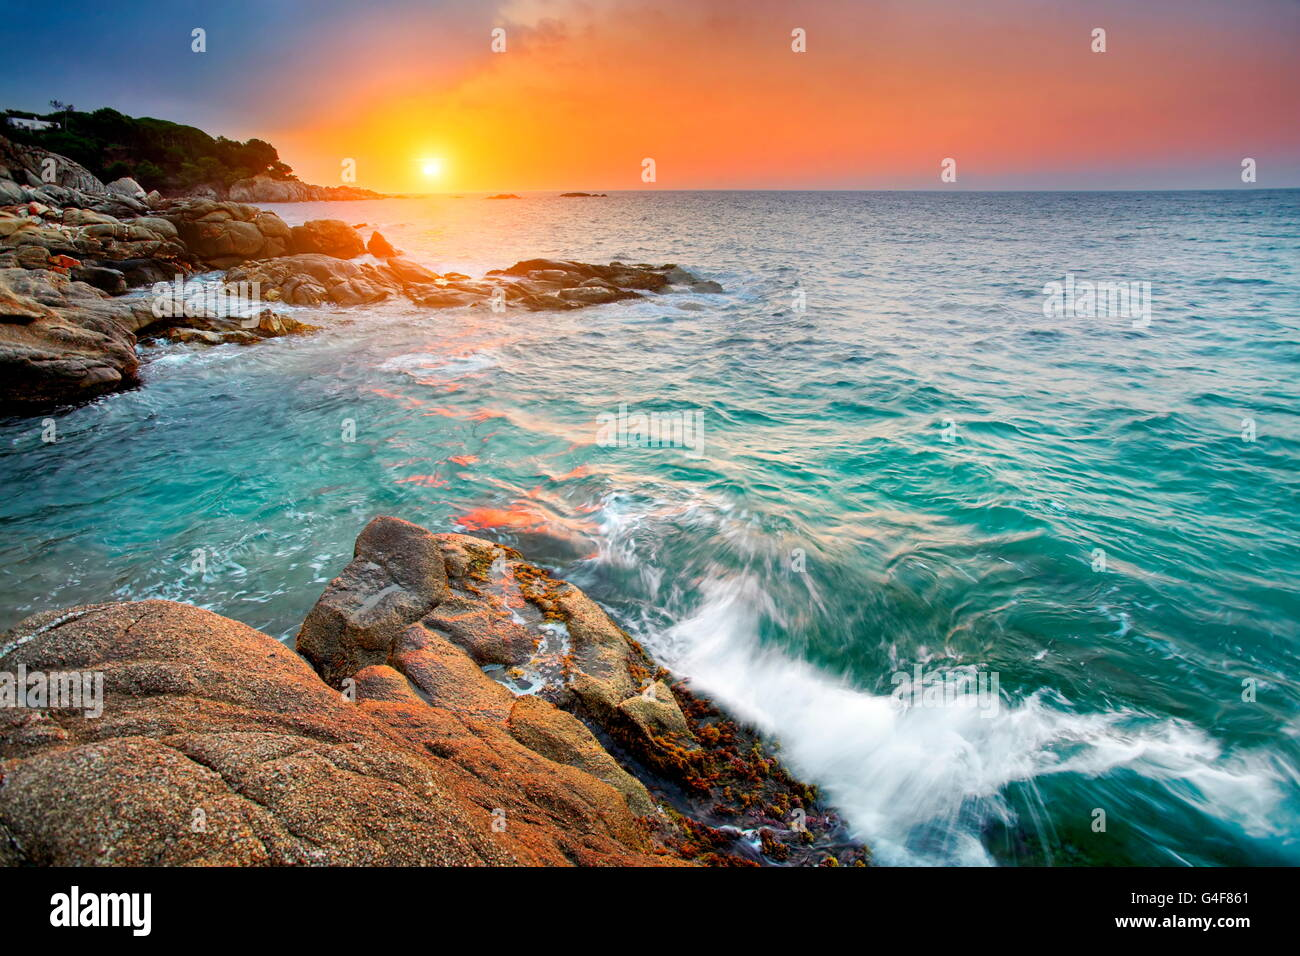 Sunrise at Costa Brava coastline, Spain - Stock Image